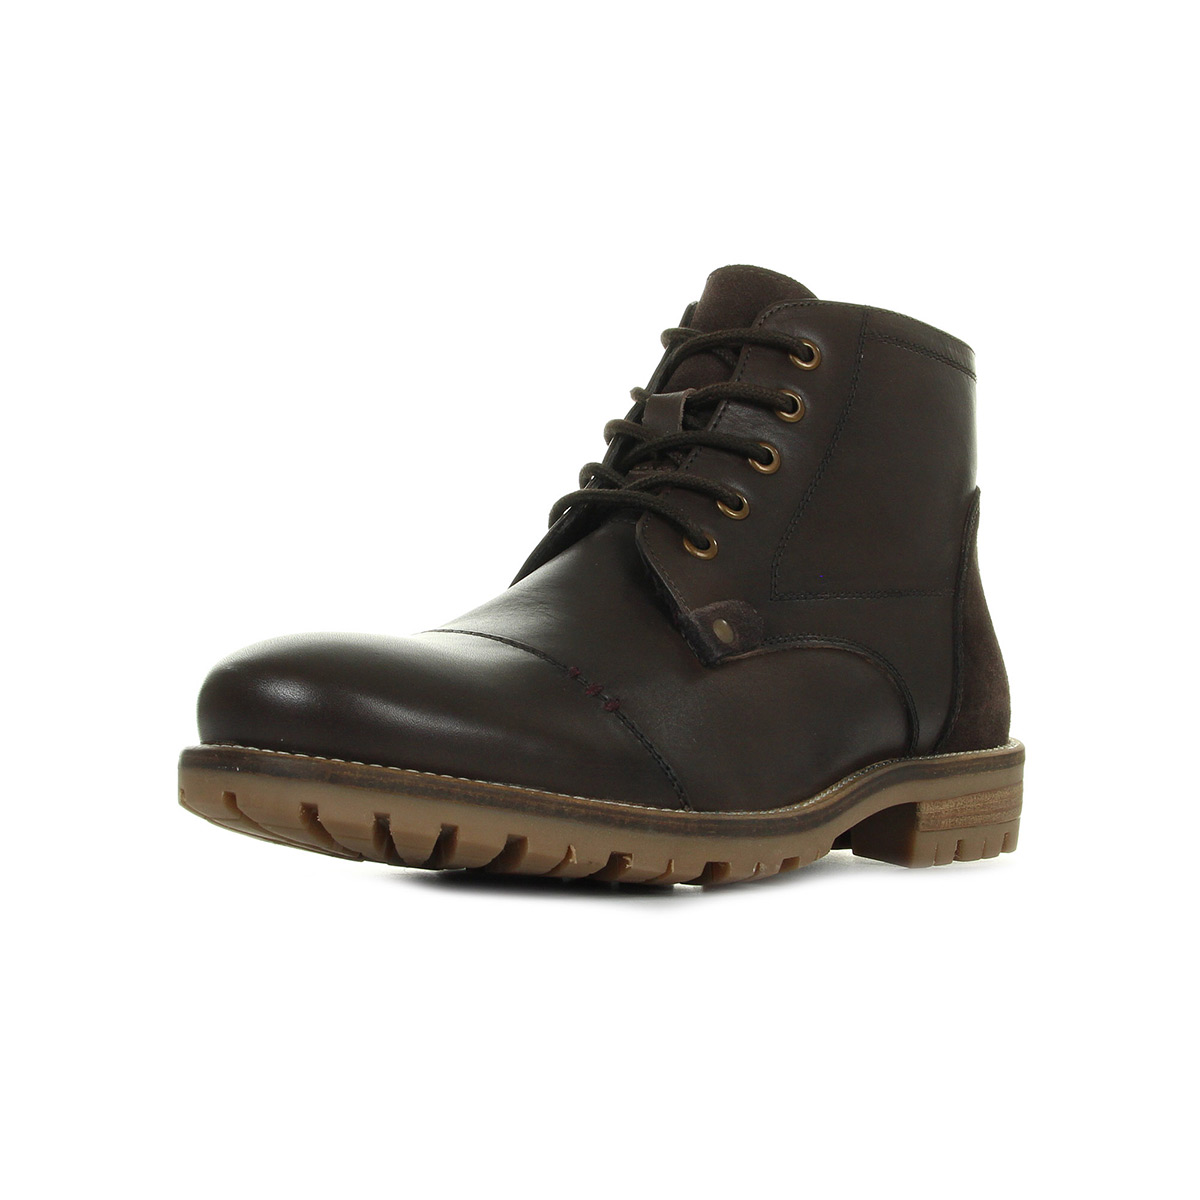 Kickers Fanfarno Cuir Marron marron - Chaussures Boot Homme